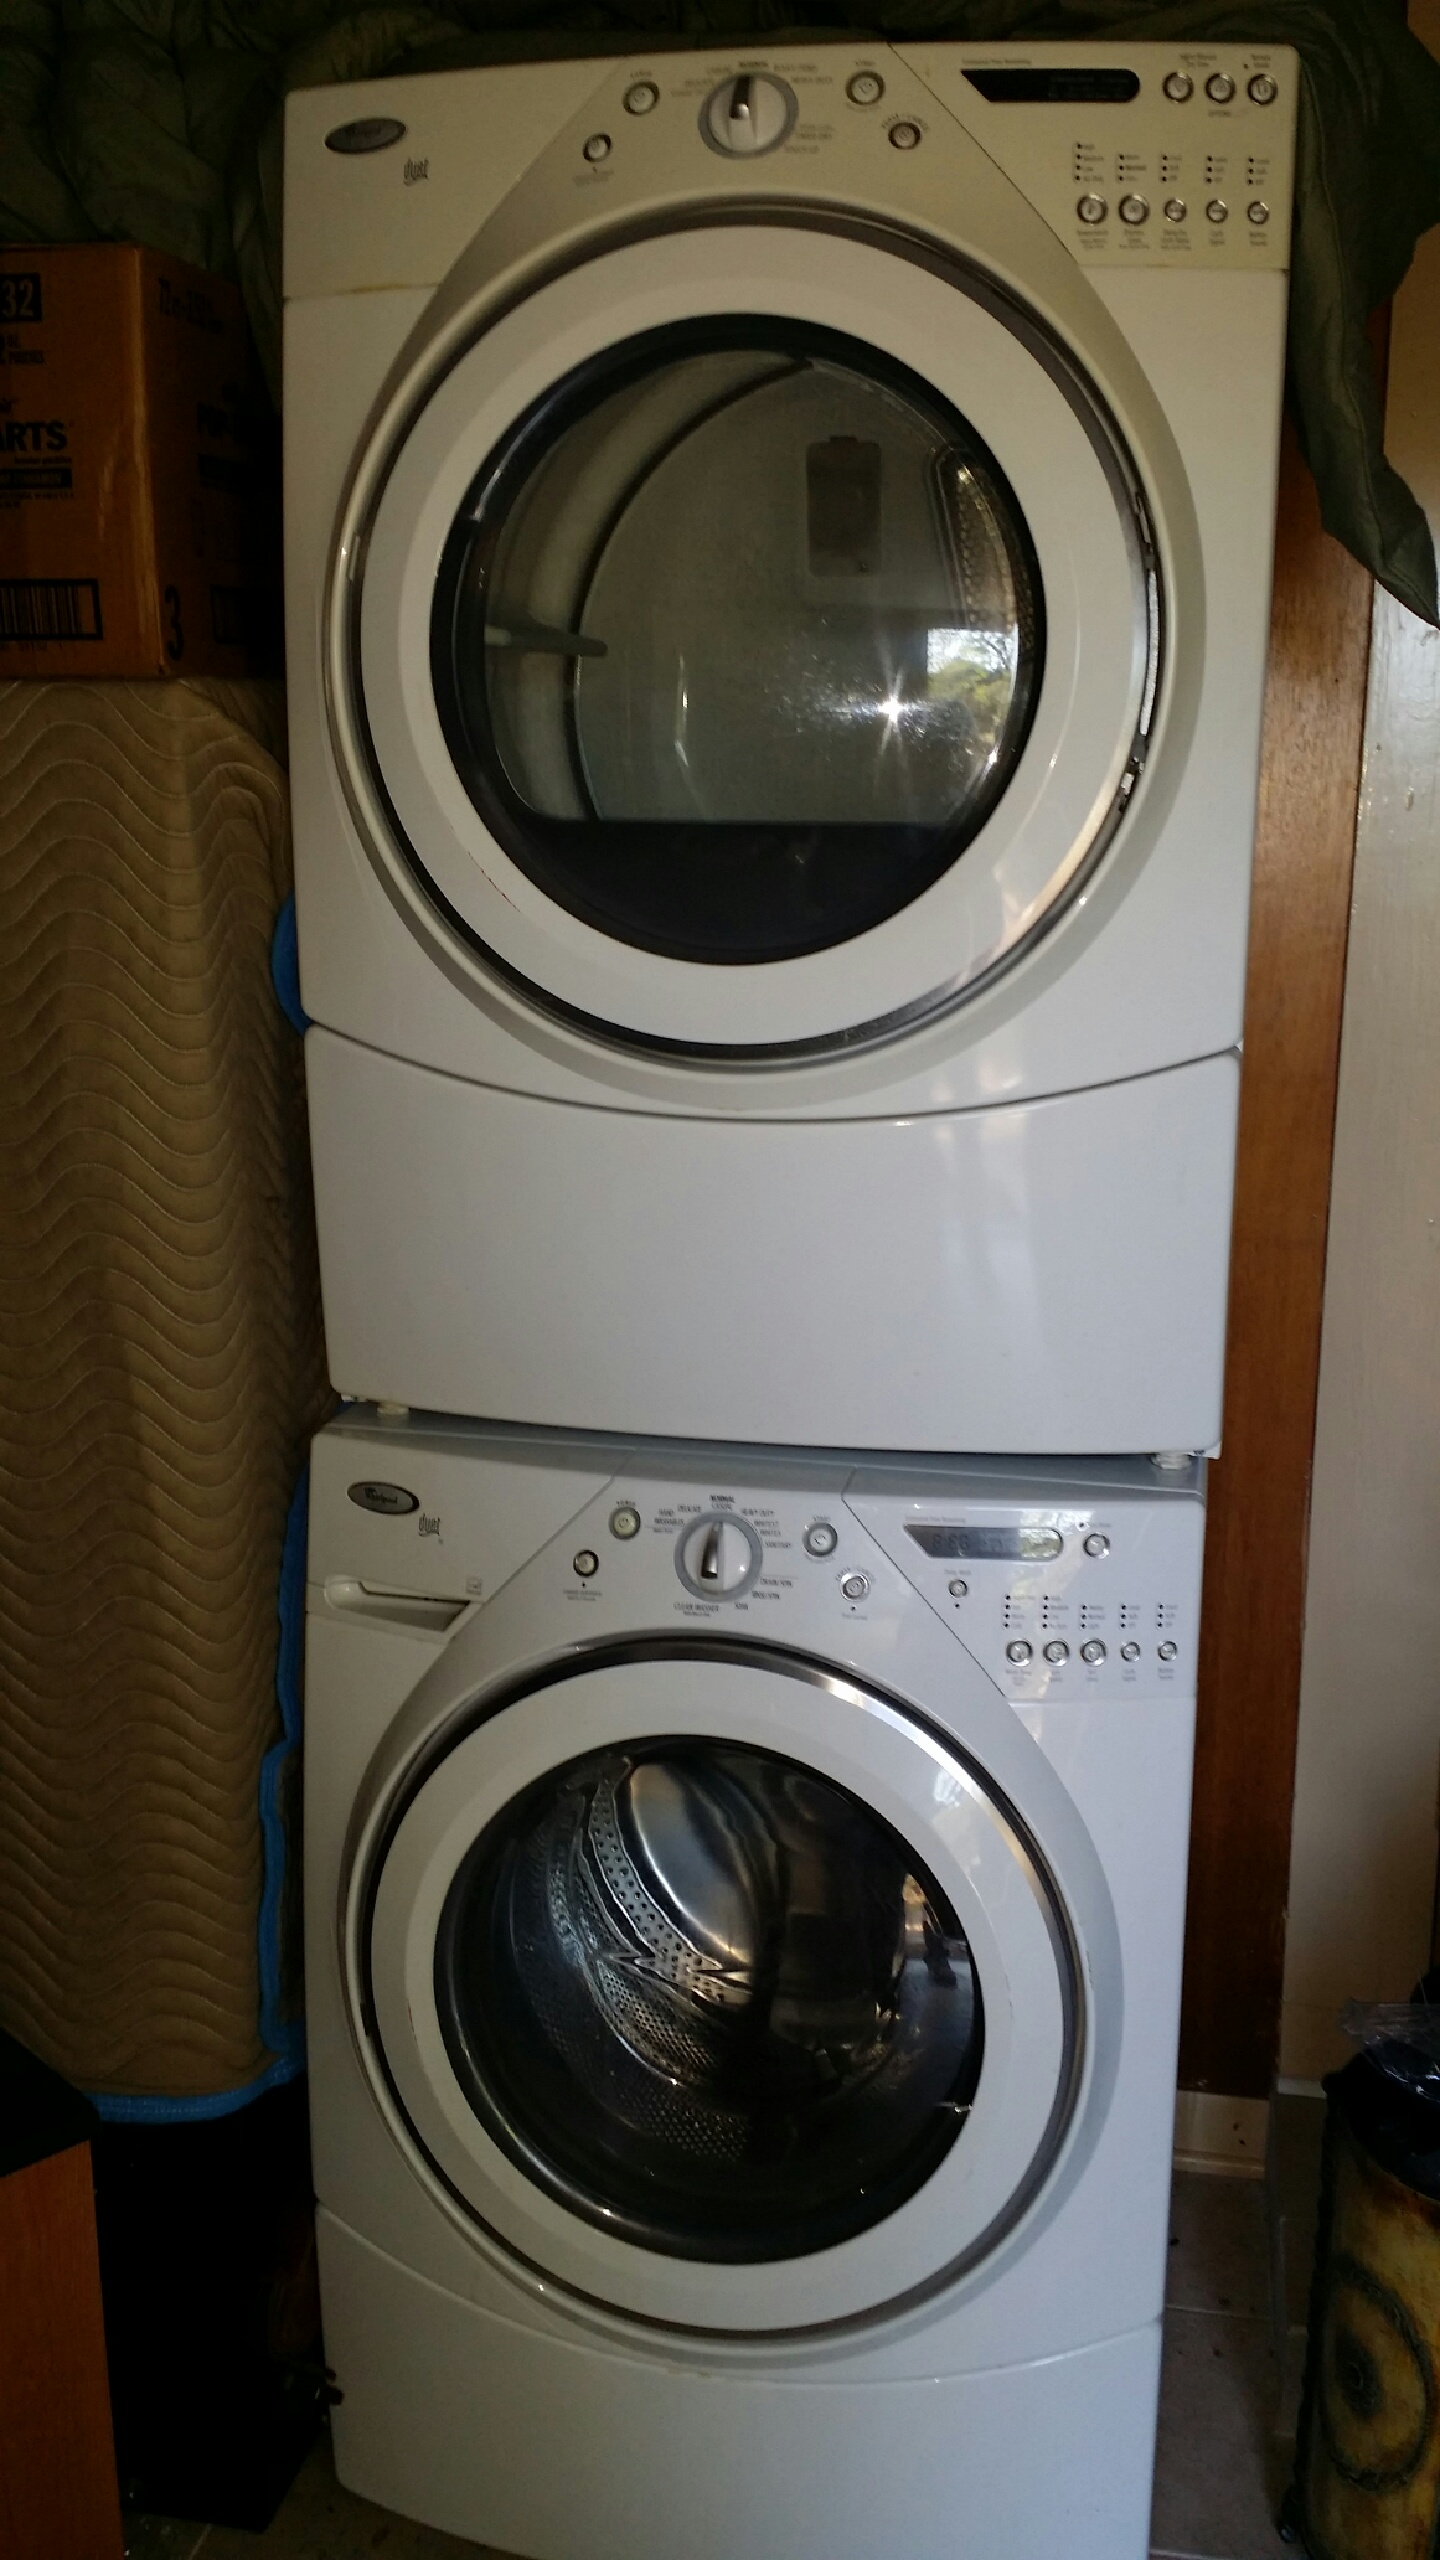 Whirlpool duet washer dryer set in simms 39 garage sale kerrville tx - Whirlpool duet washer and dryer ...